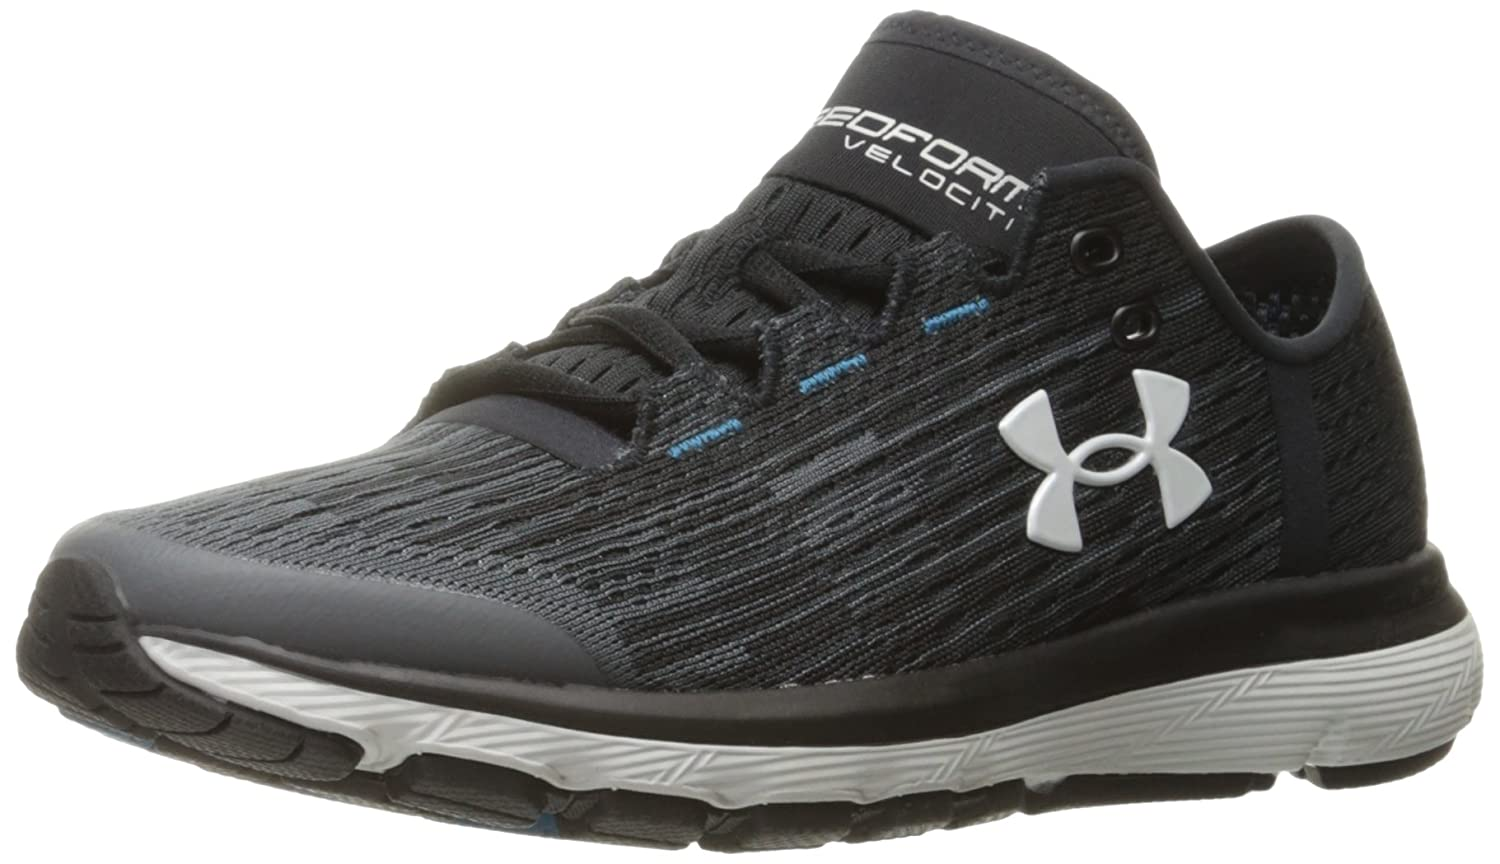 Under Armour Women's Speedform Velociti Graphic Running Shoe B01MXXIUD8 8 M US|Rhino Gray (100)/Black